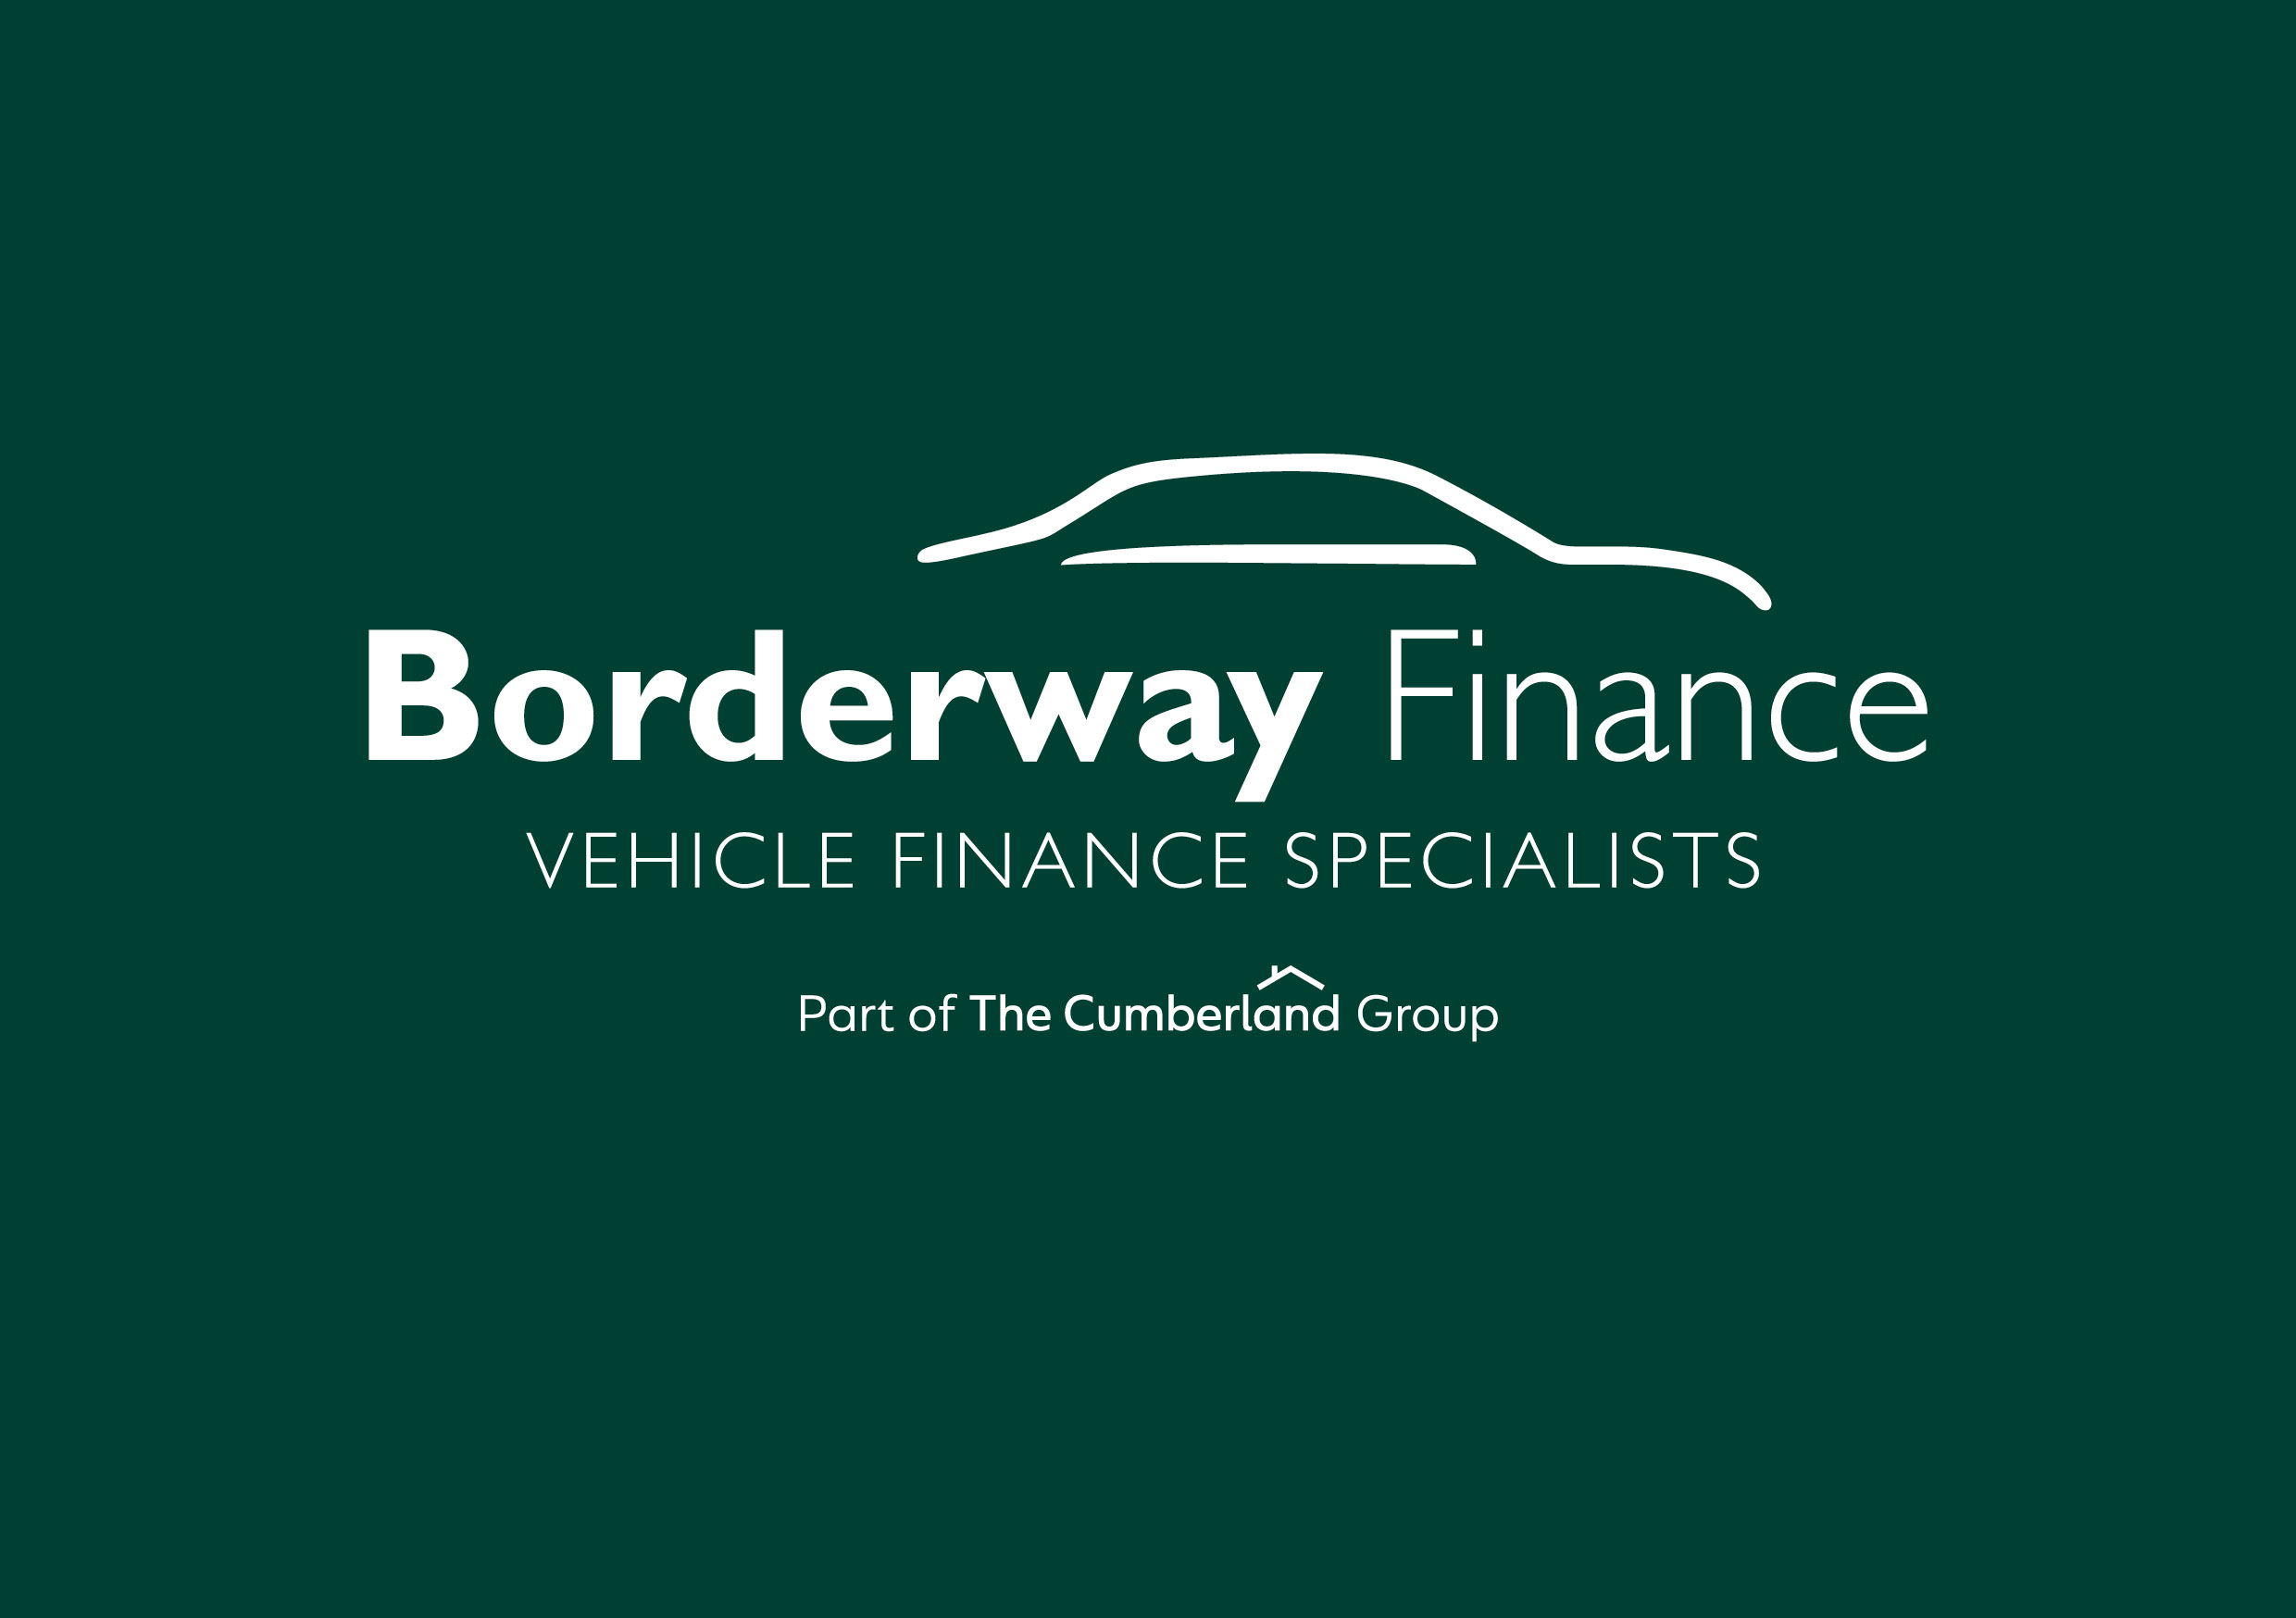 borderway logo reversed.jpg